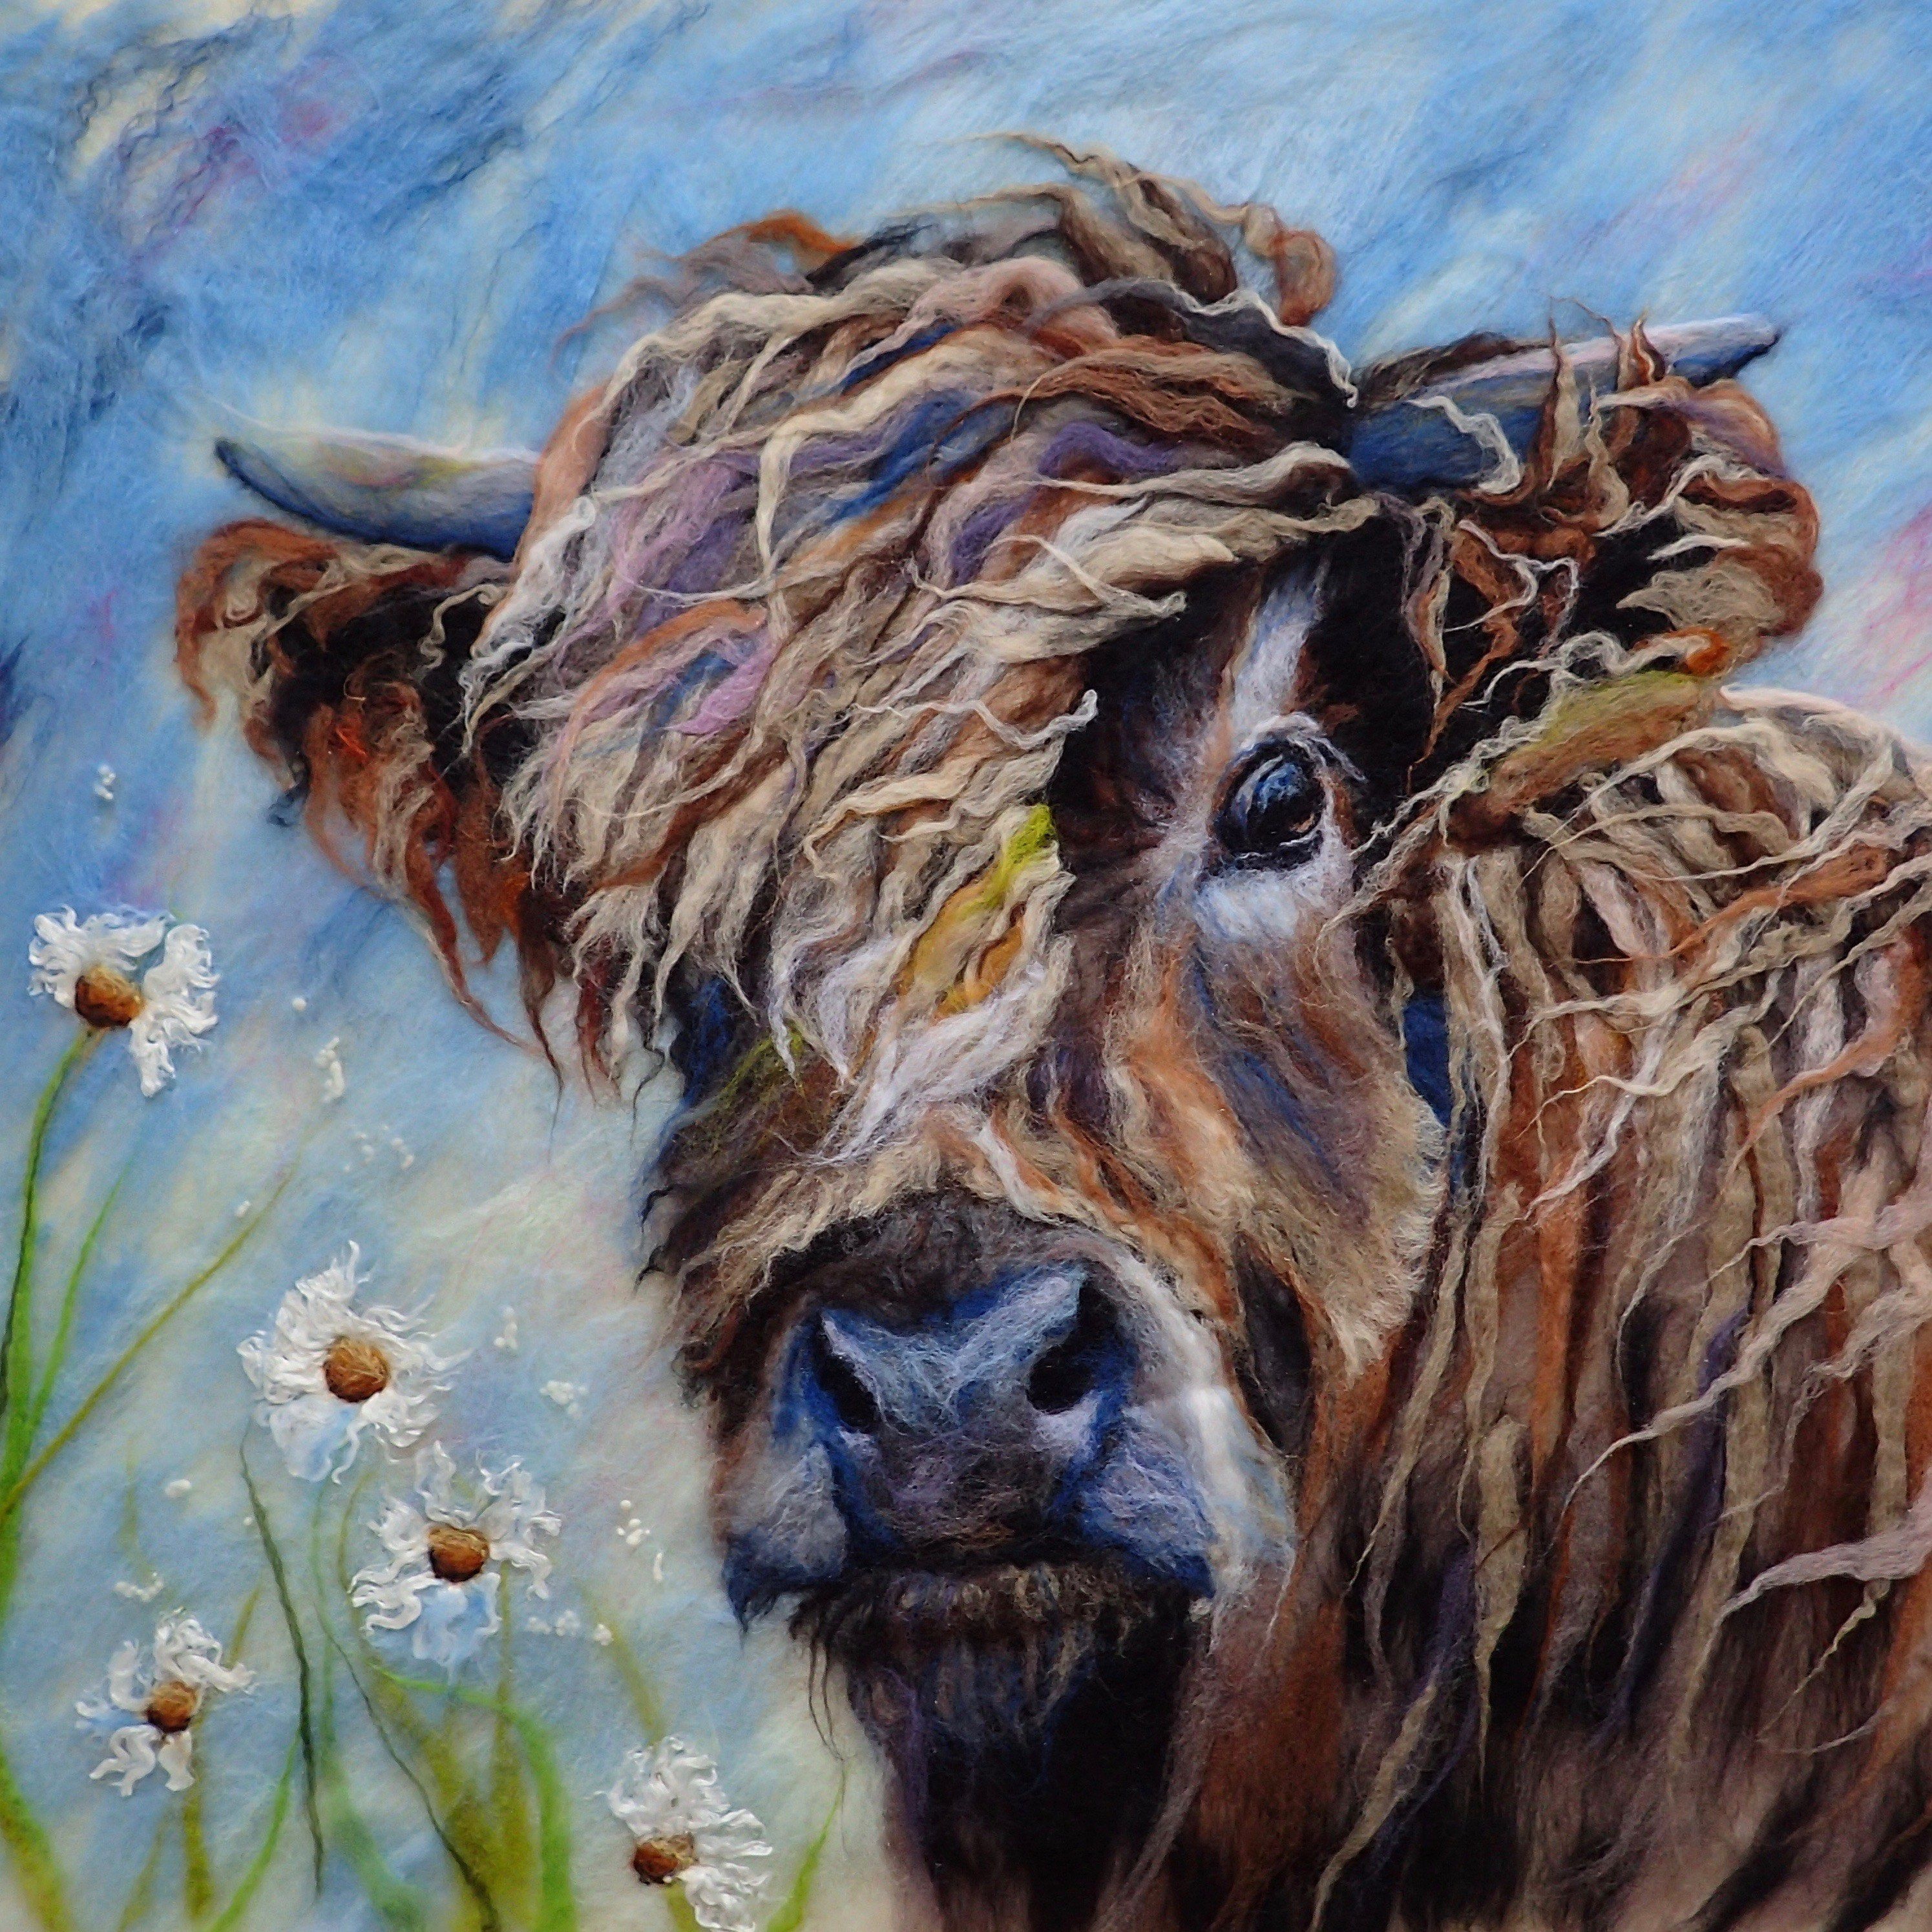 Marmaladerose.co.uk. The original wet-felted wool animal art. 'Before the Storm'. Highland cow made from hand felted wool.